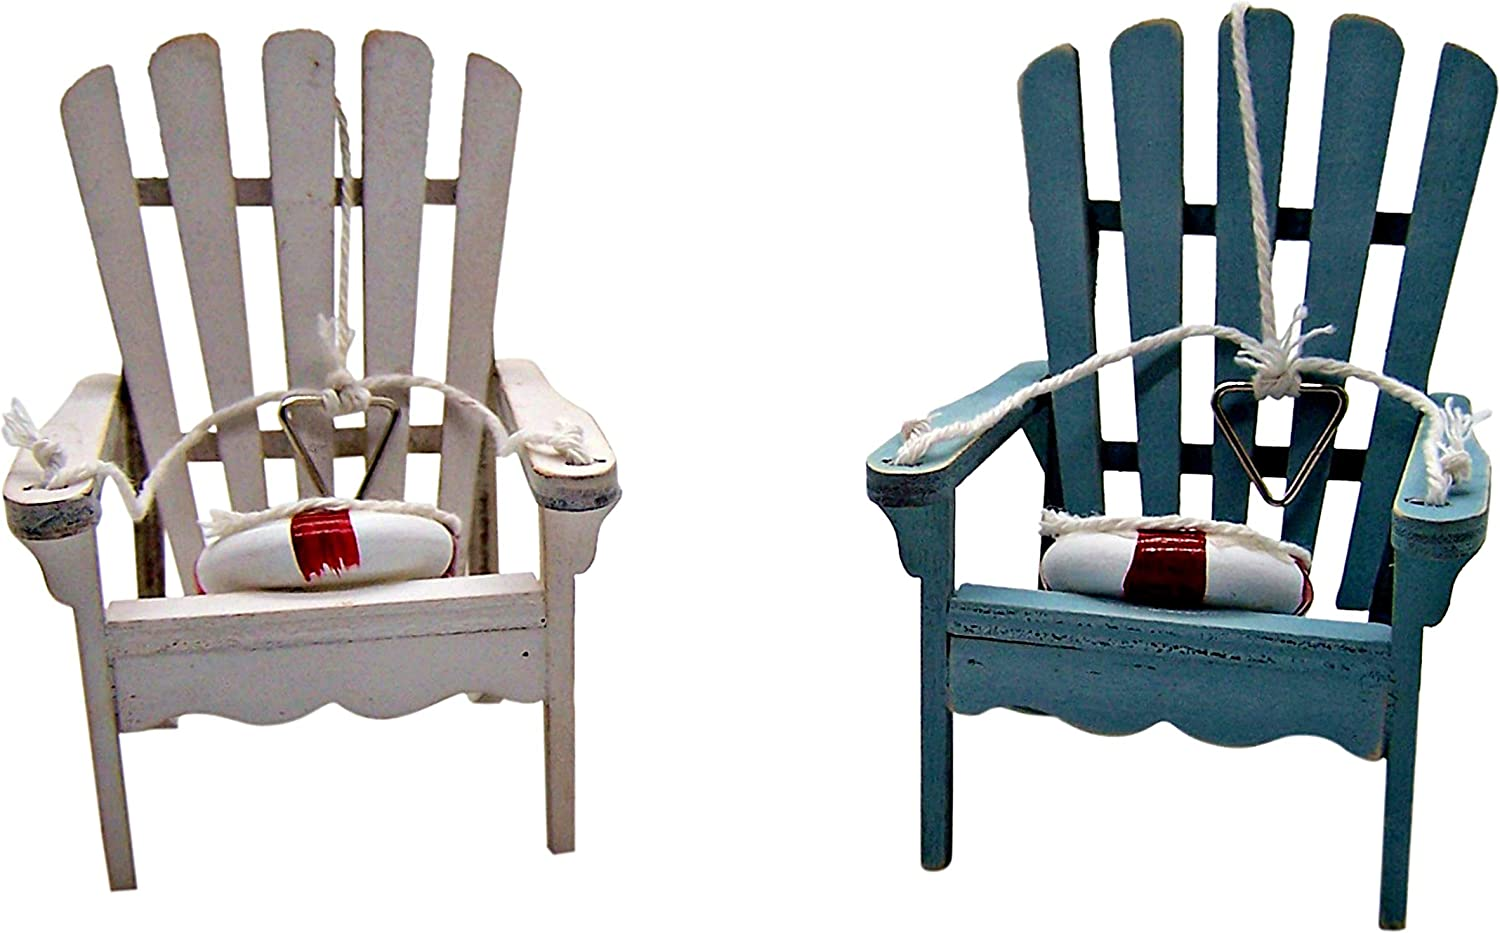 Mini Wooden Beach Chairs Christmas Ornament, Coastal Holiday Decor, White and Blue, 4 1/2 Inch, Set of 2